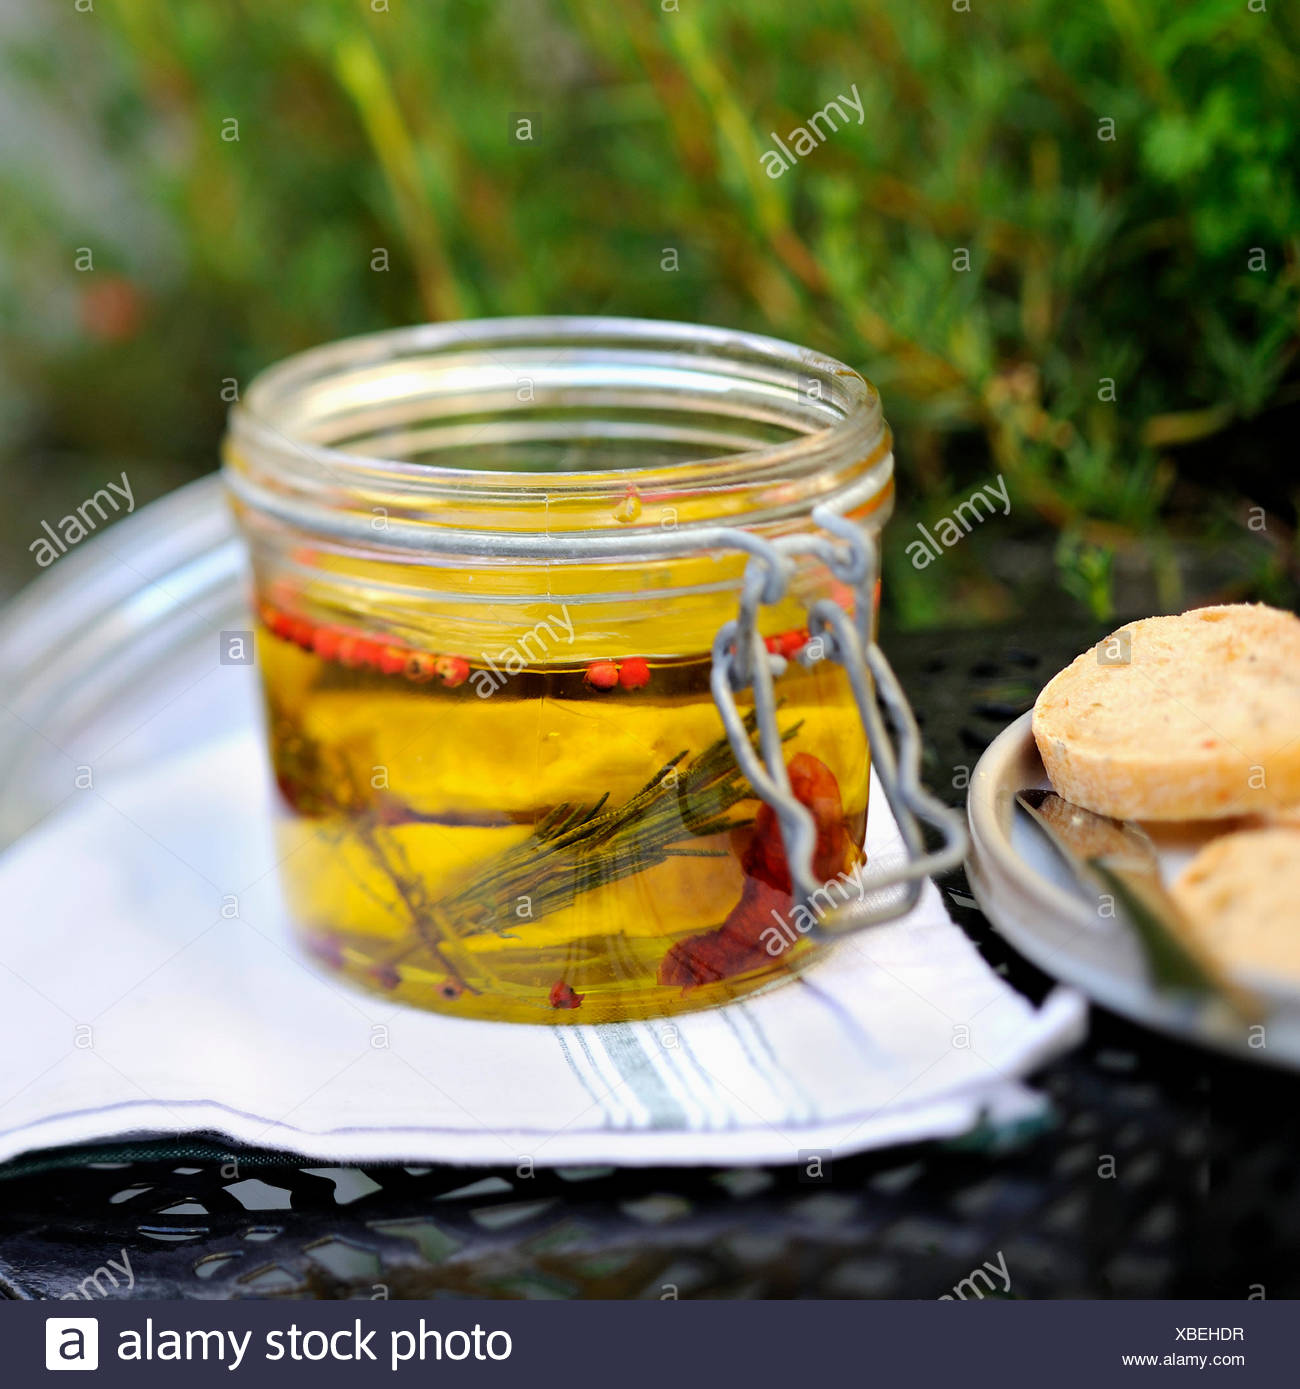 Jar of goat's cheese marinating in olive oil - Stock Image